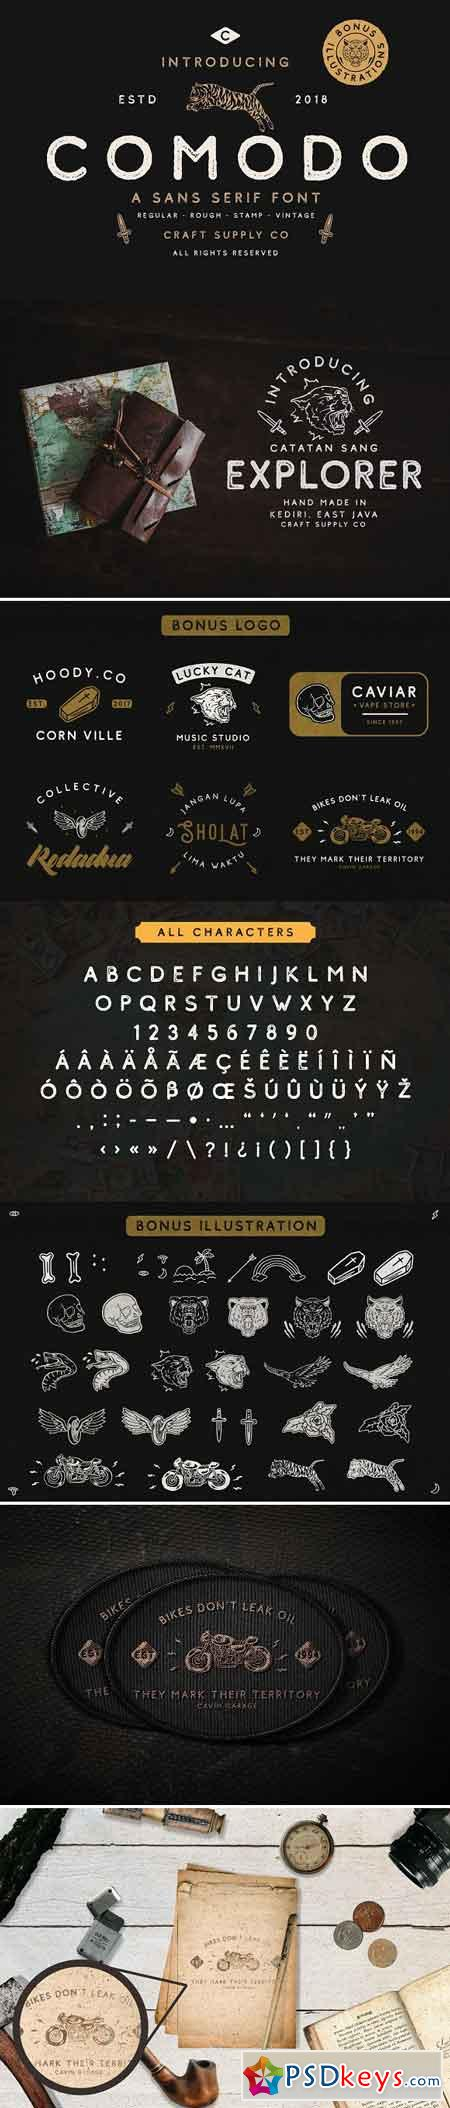 Comodo Font Family + Illustrations 2905620